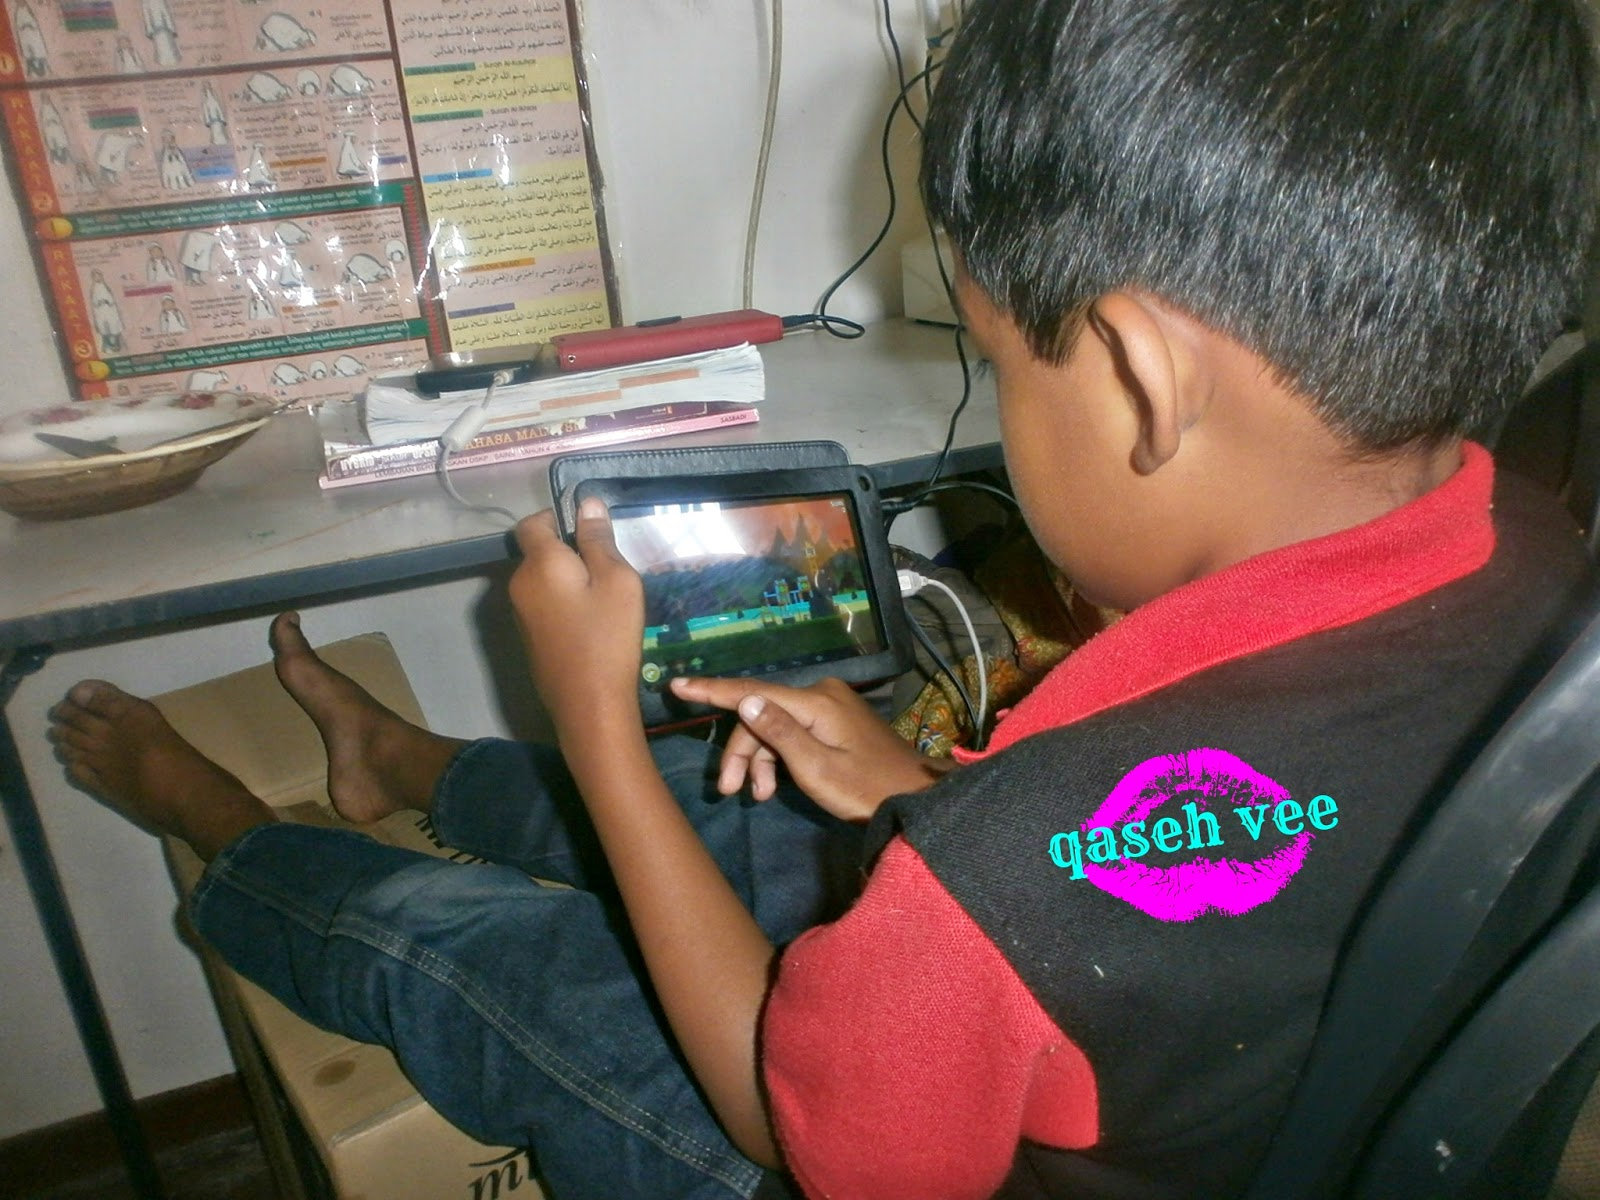 Tablet PC Vofox